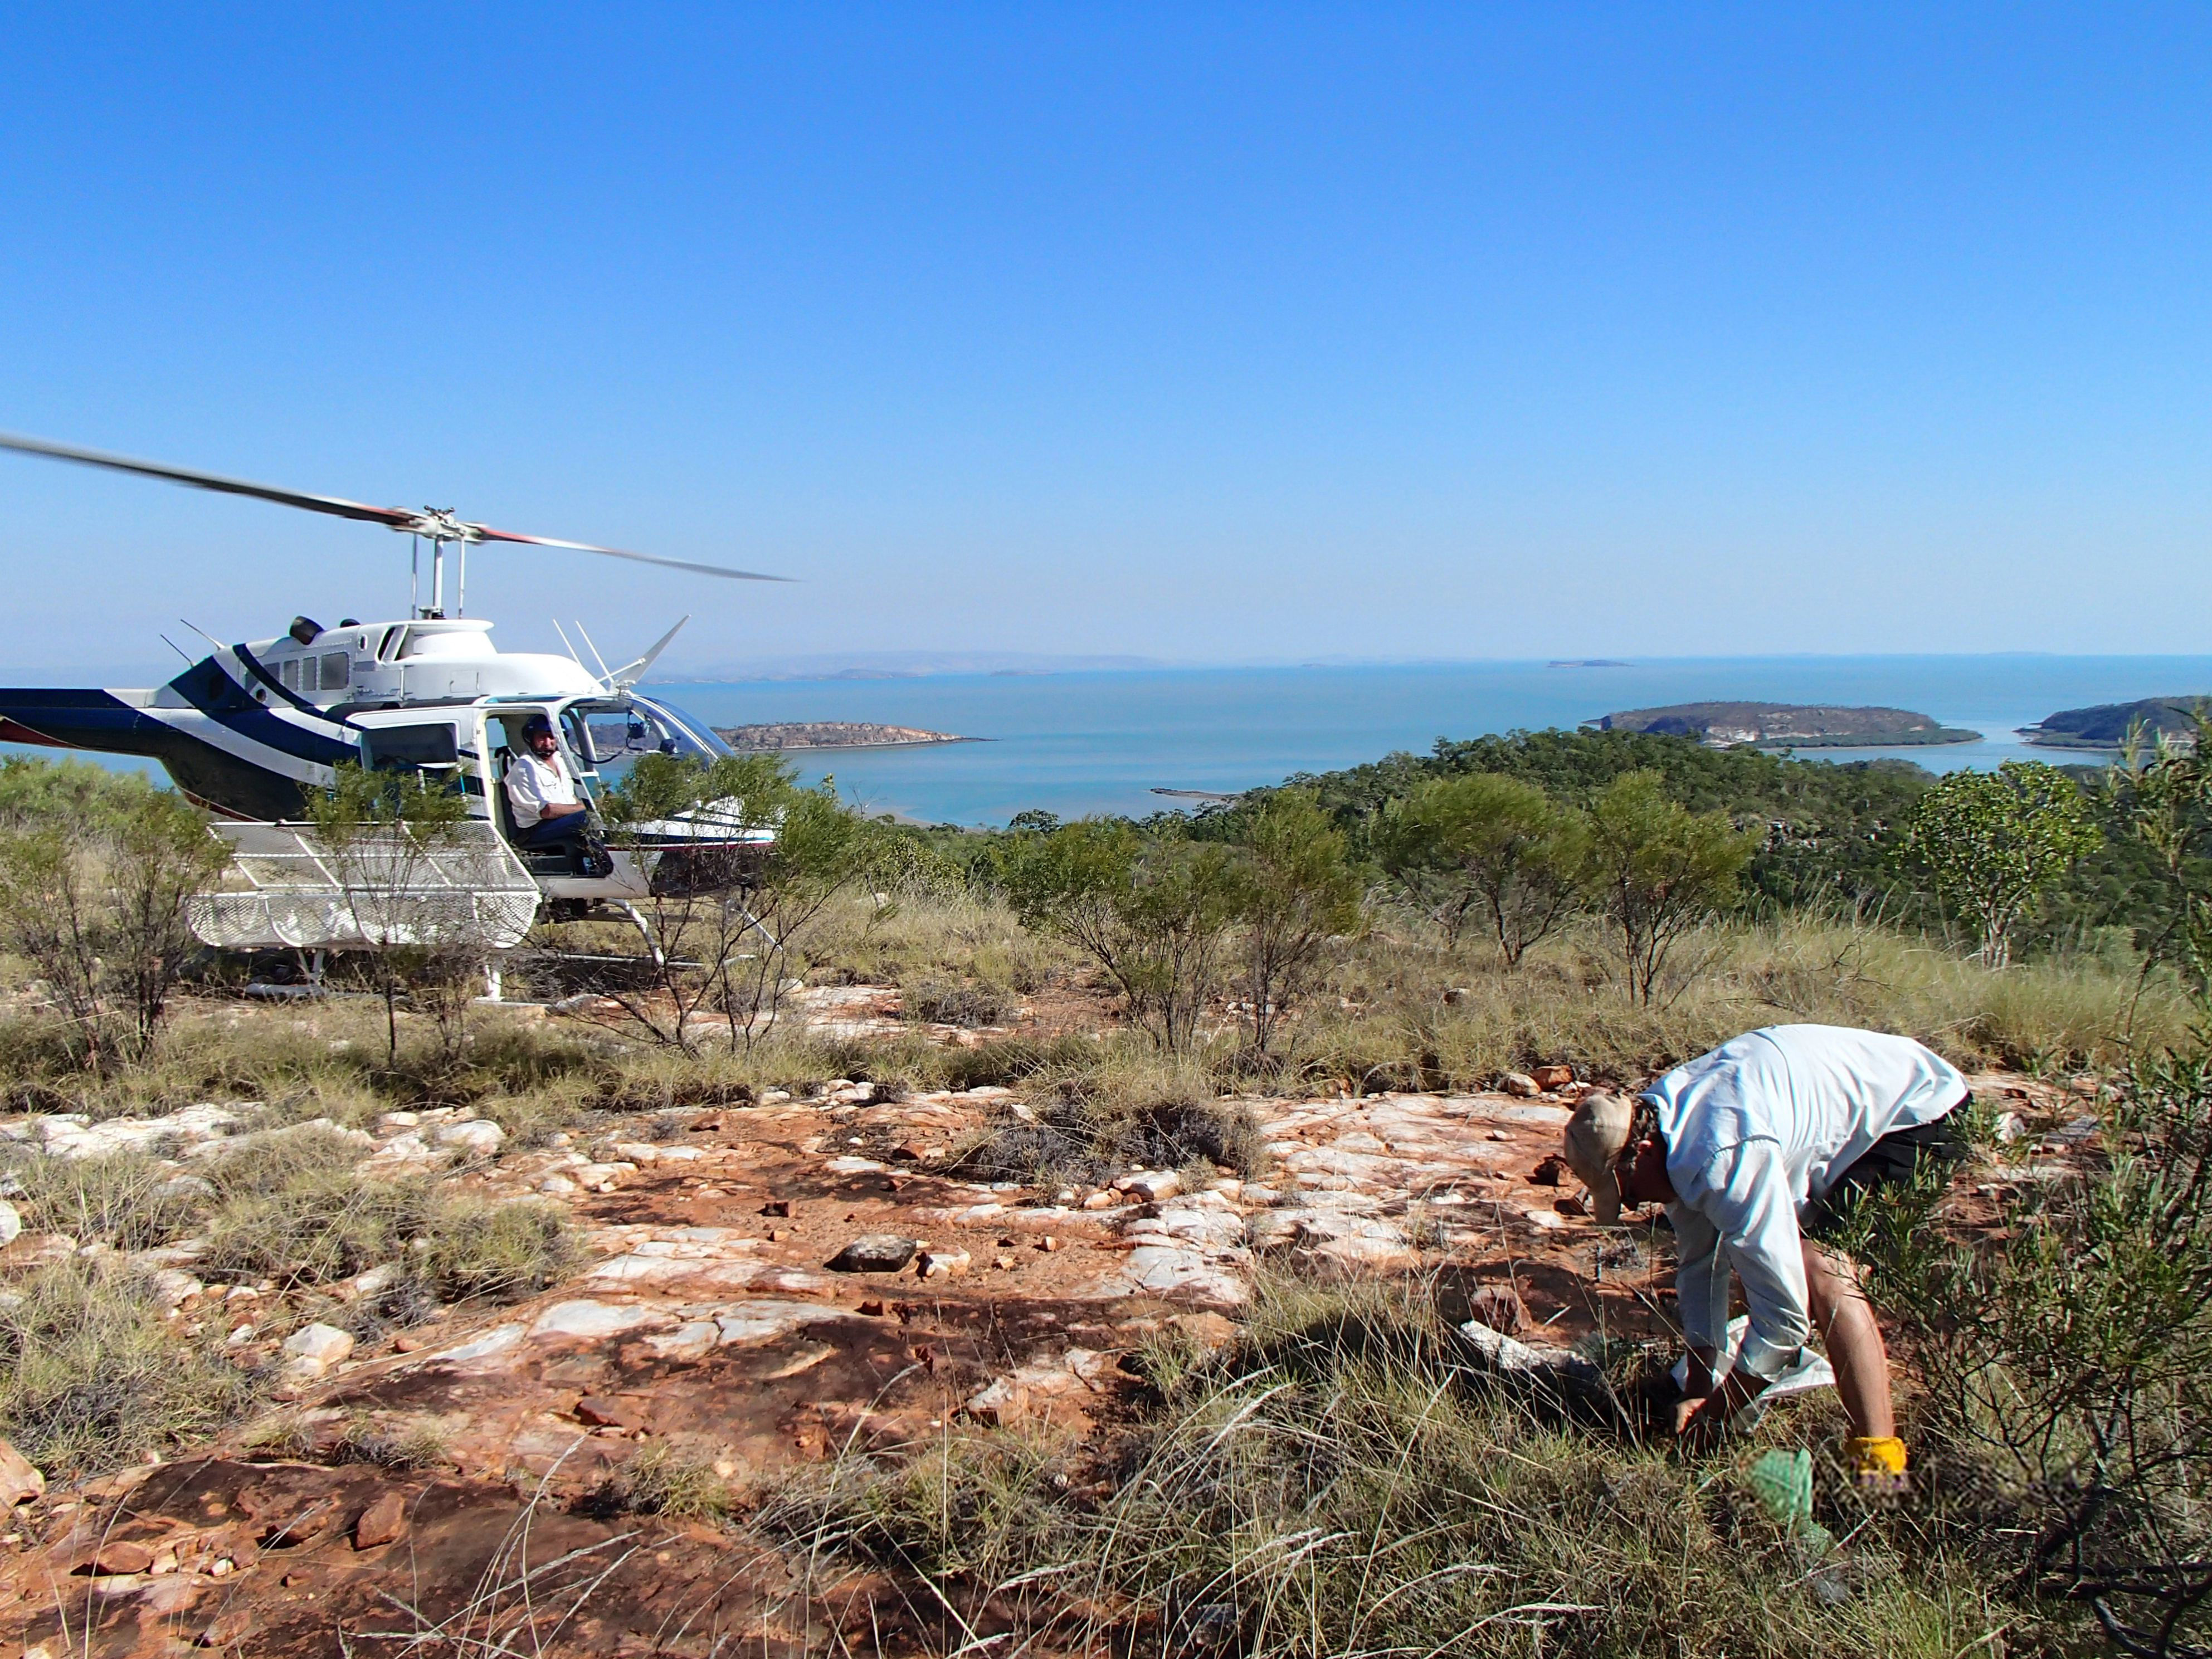 Regolith is poorly developed on the Yampi Peninsula in the western part of the Kimberley region of northwest Australia. Sampling is carried out by helicopter fitted with a skid-mounted basket to hold sampling equipment and expand the sample-carrying capacity. - Paul Morris, Gov of WA